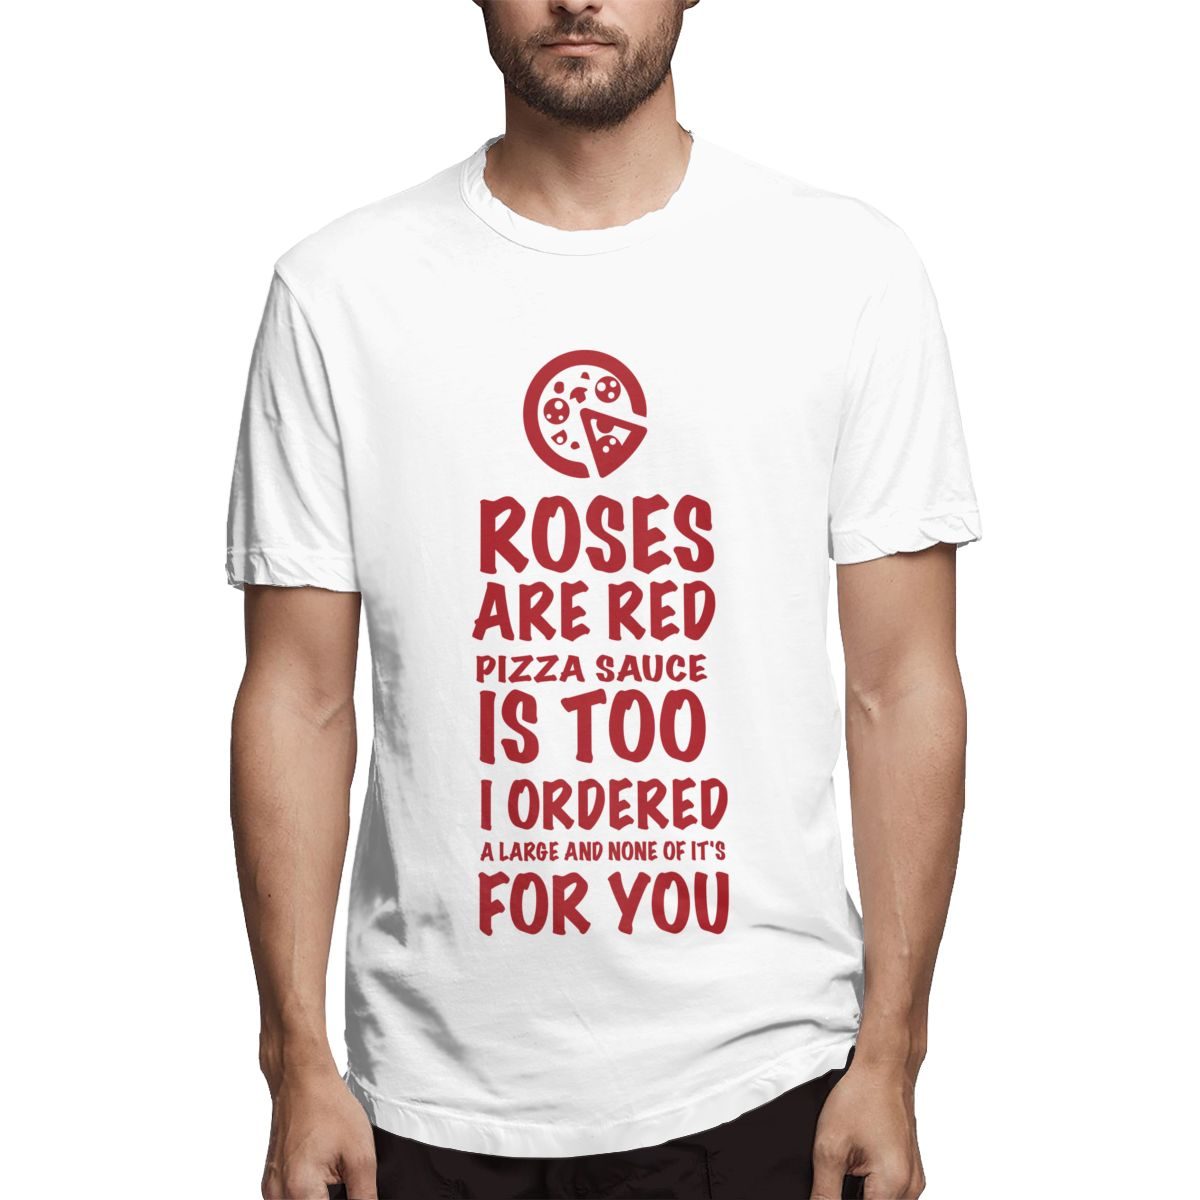 Men t-shirt for men short sleeve print Roses Are Red Pizza Sauce Is Too men T shirt casual o-neck mens tee shirts o-neck tshirt image